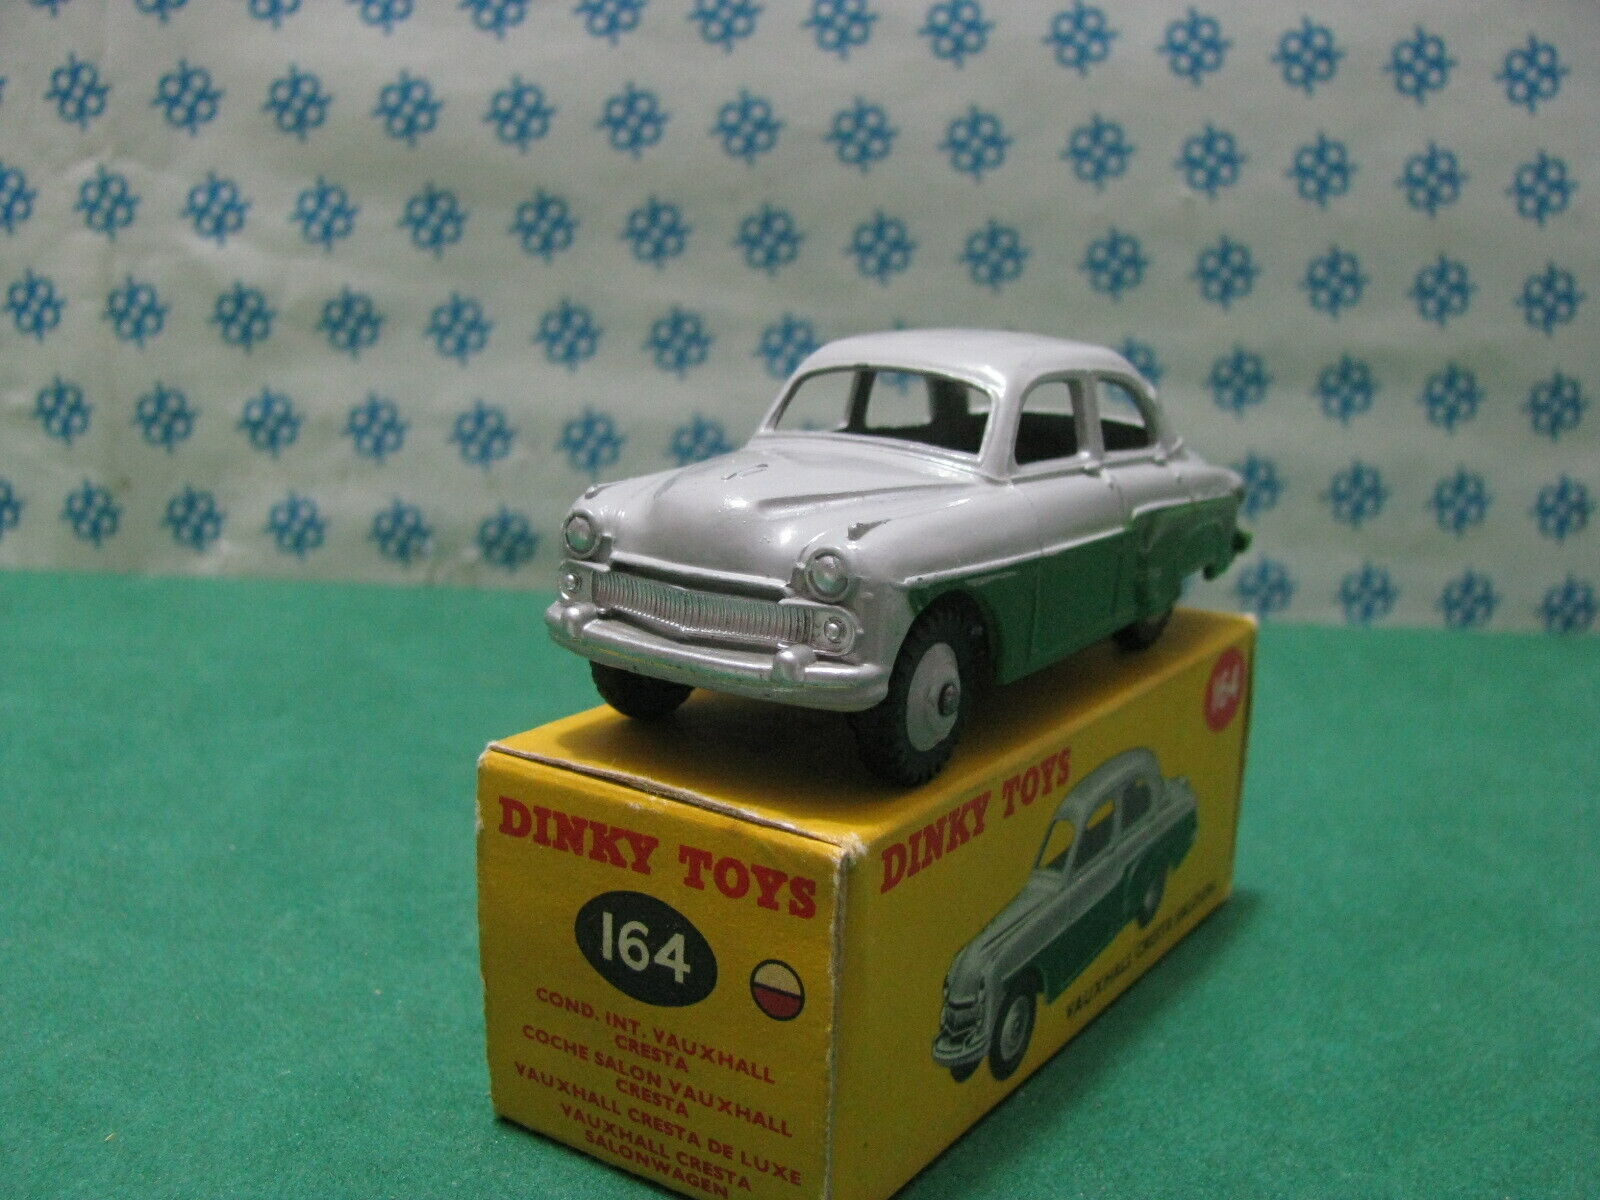 Vintage Dinky toys   -    VAUHXALL CRESTA Saloon   -  1 43 Dinky toys 164  MIB